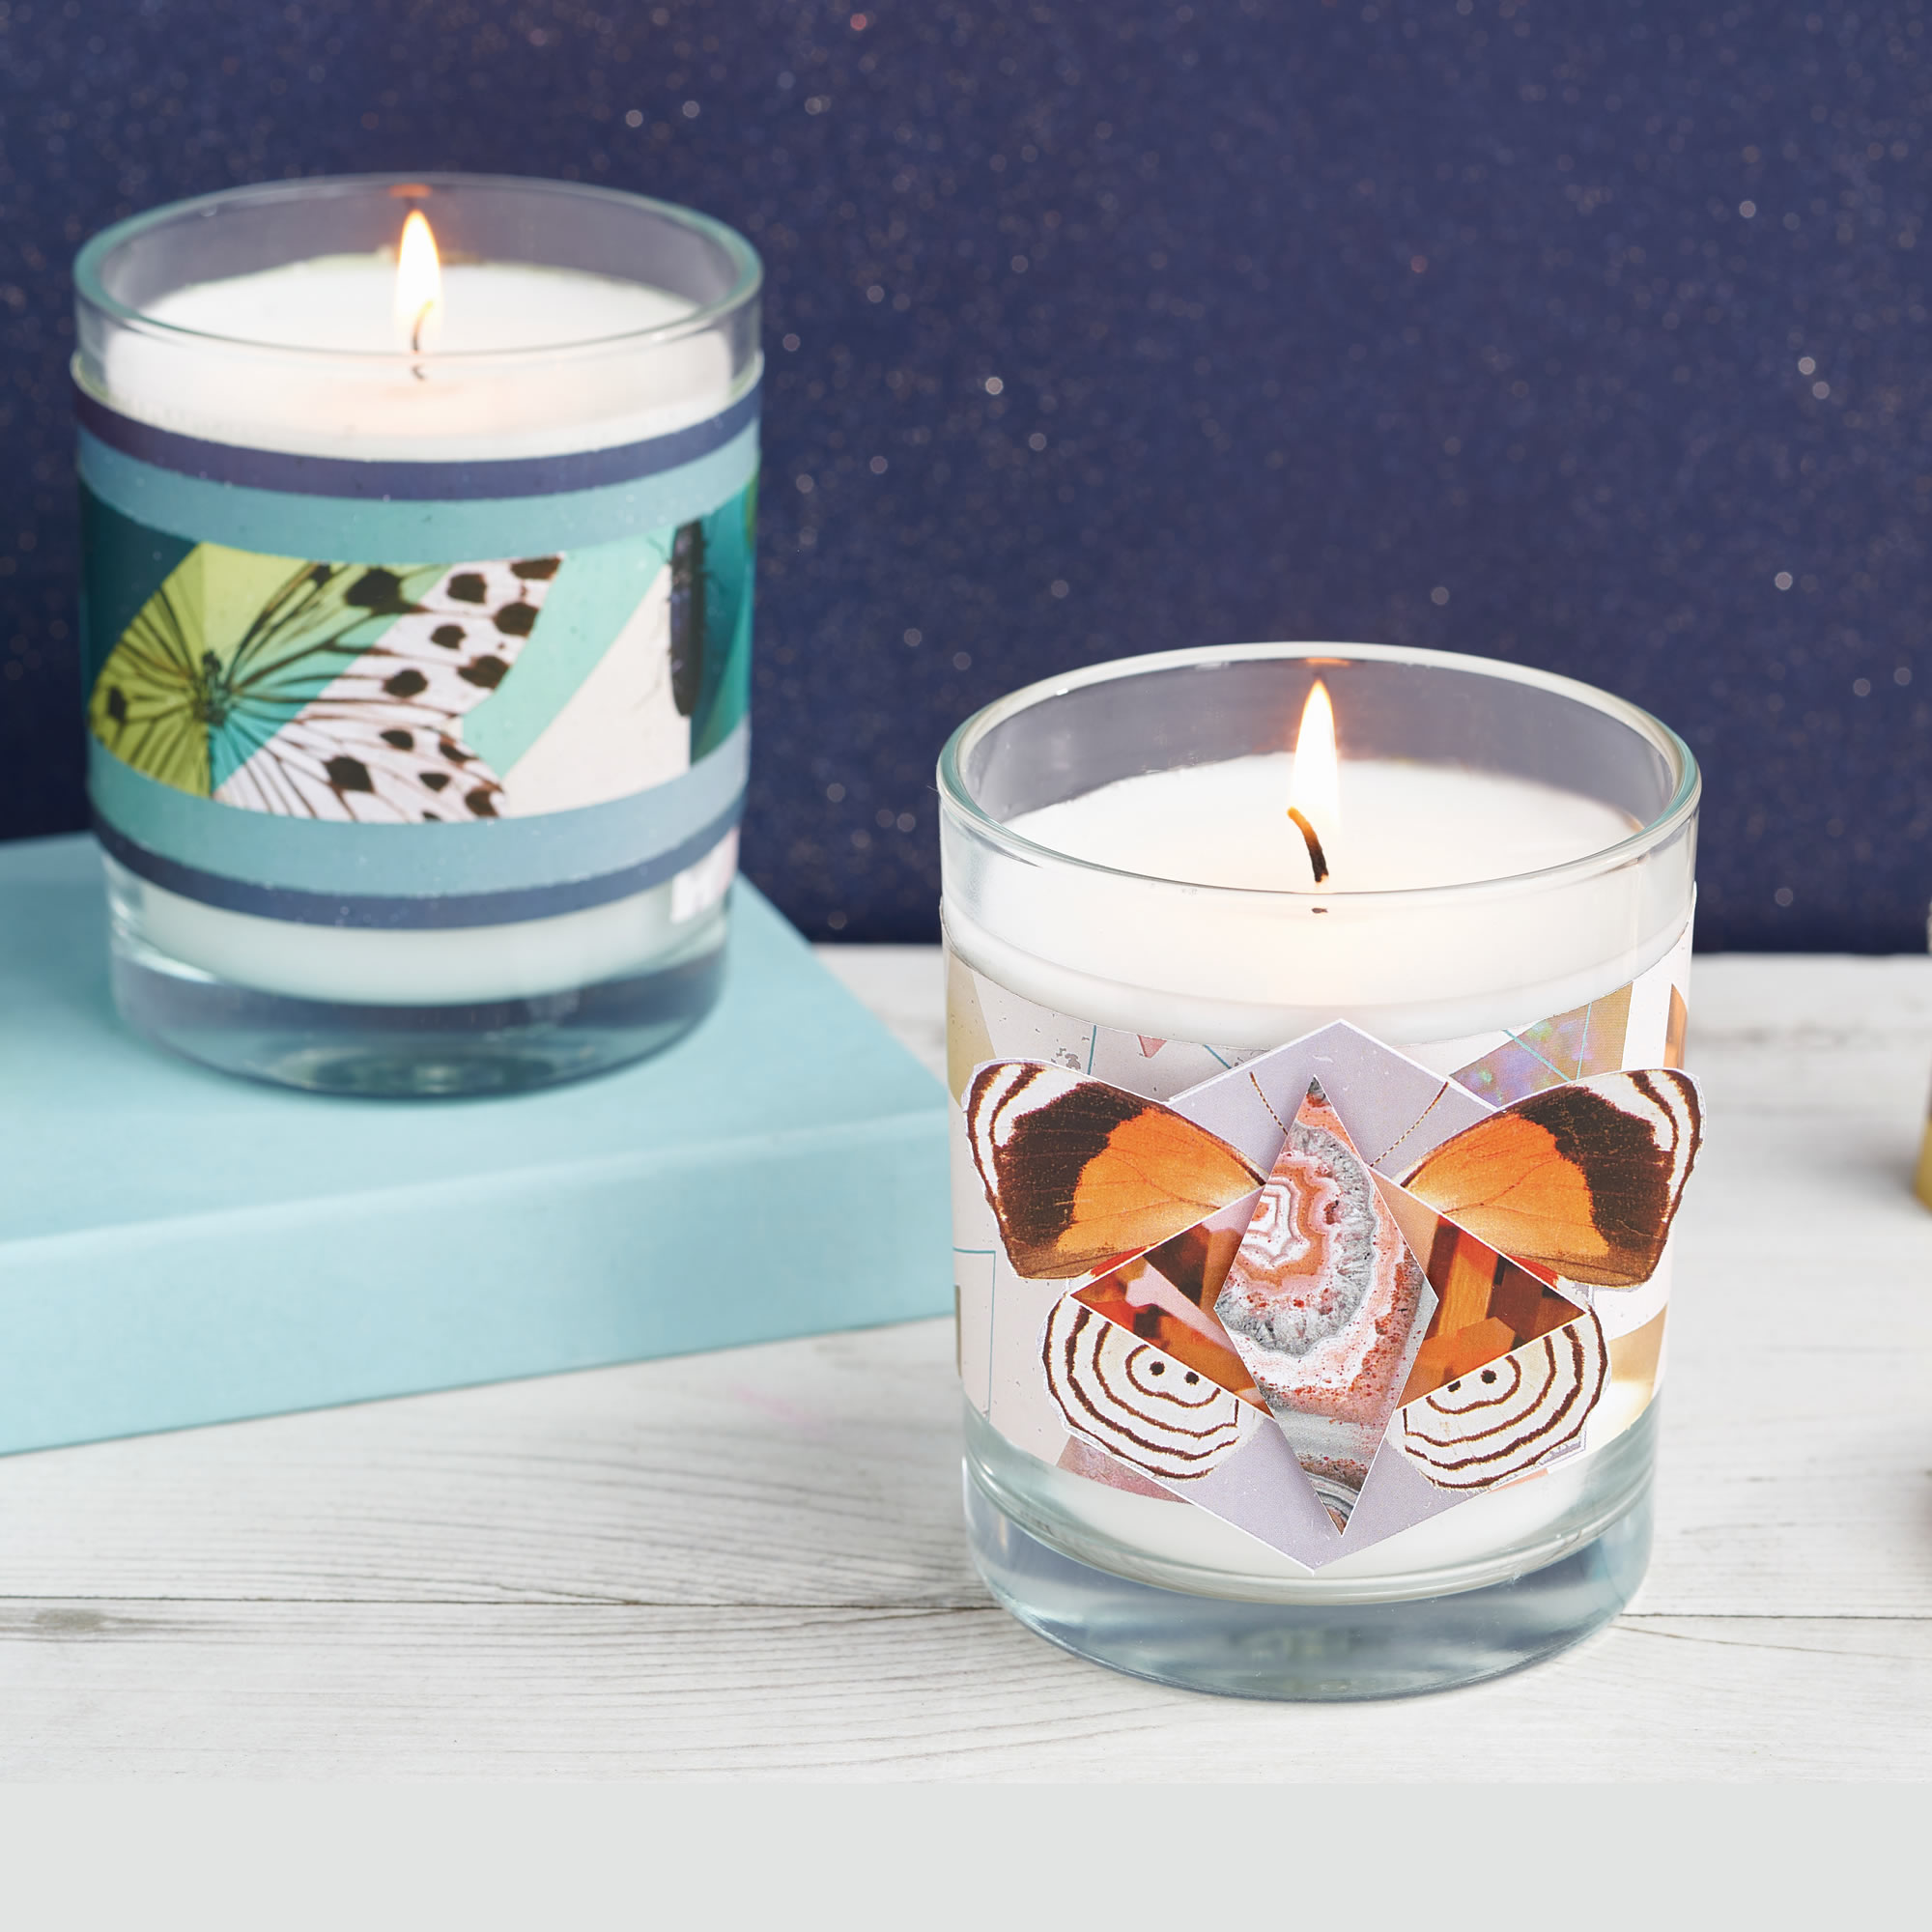 Candle decor using 'Natures Geometry' 12x12 printed paper